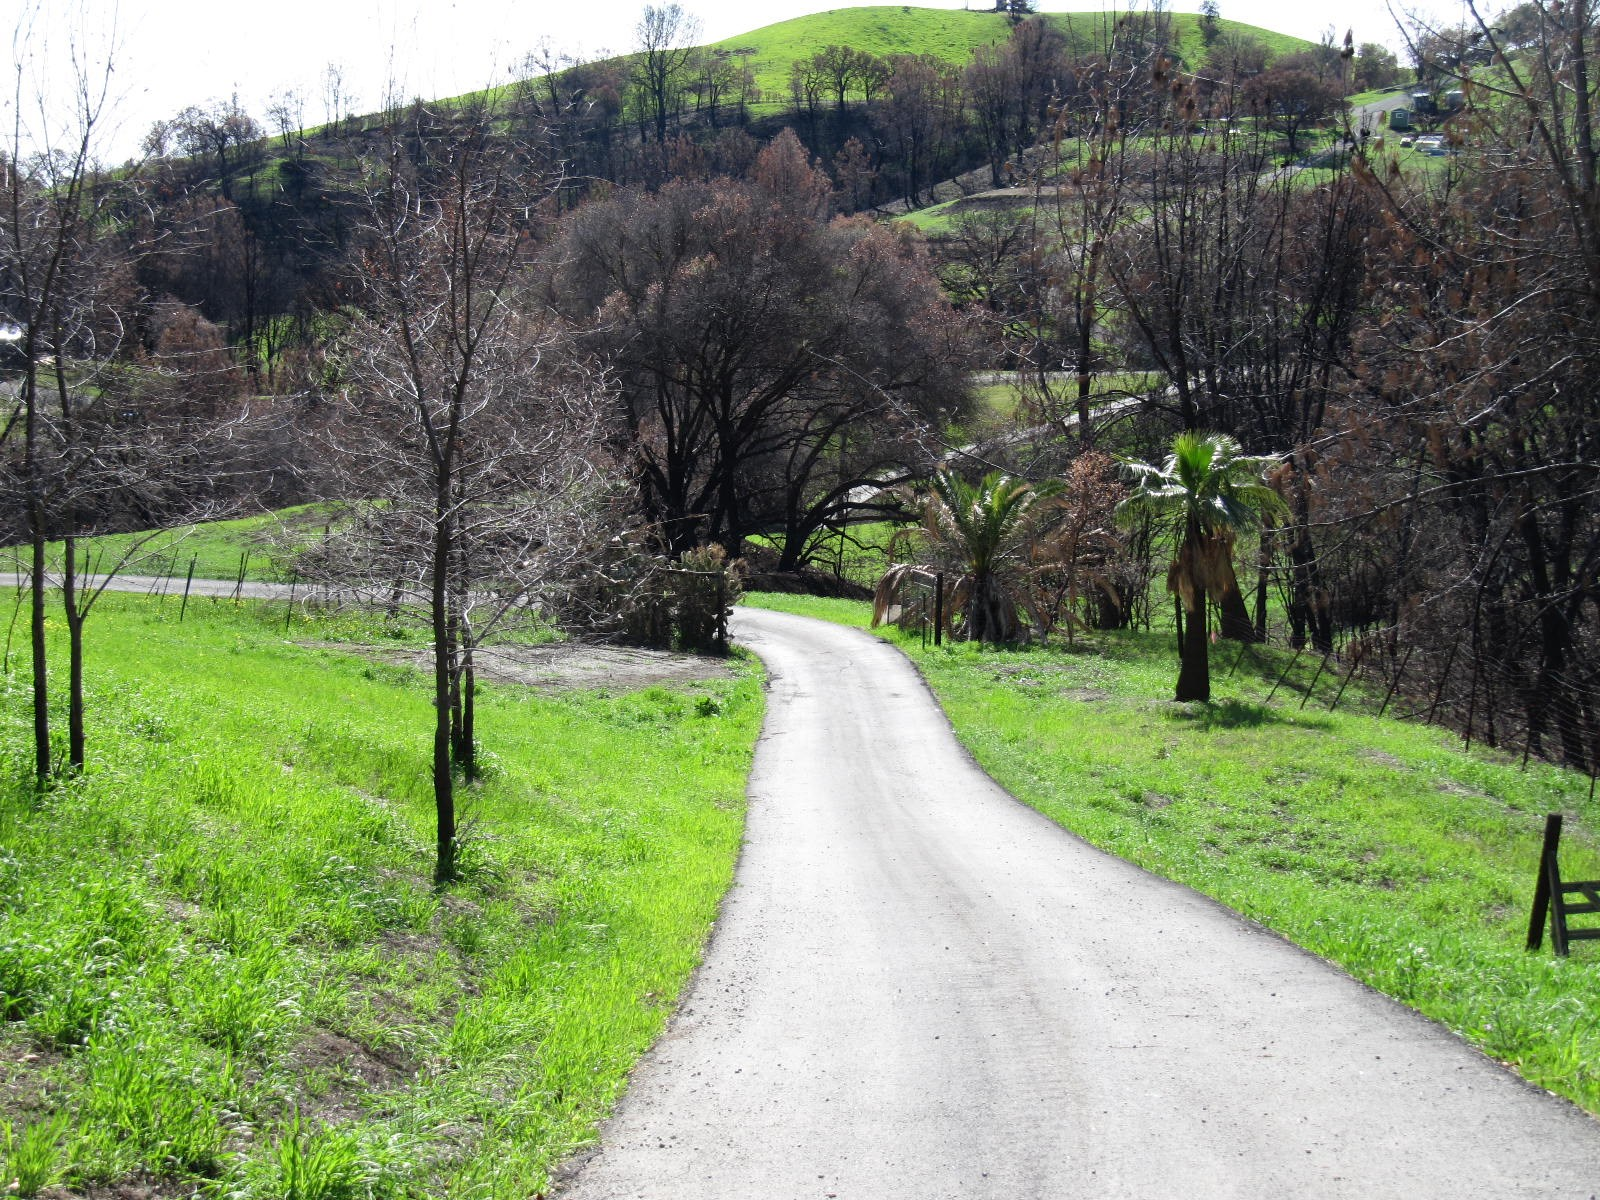 Northern California Vacant Land to Build Home For Sale